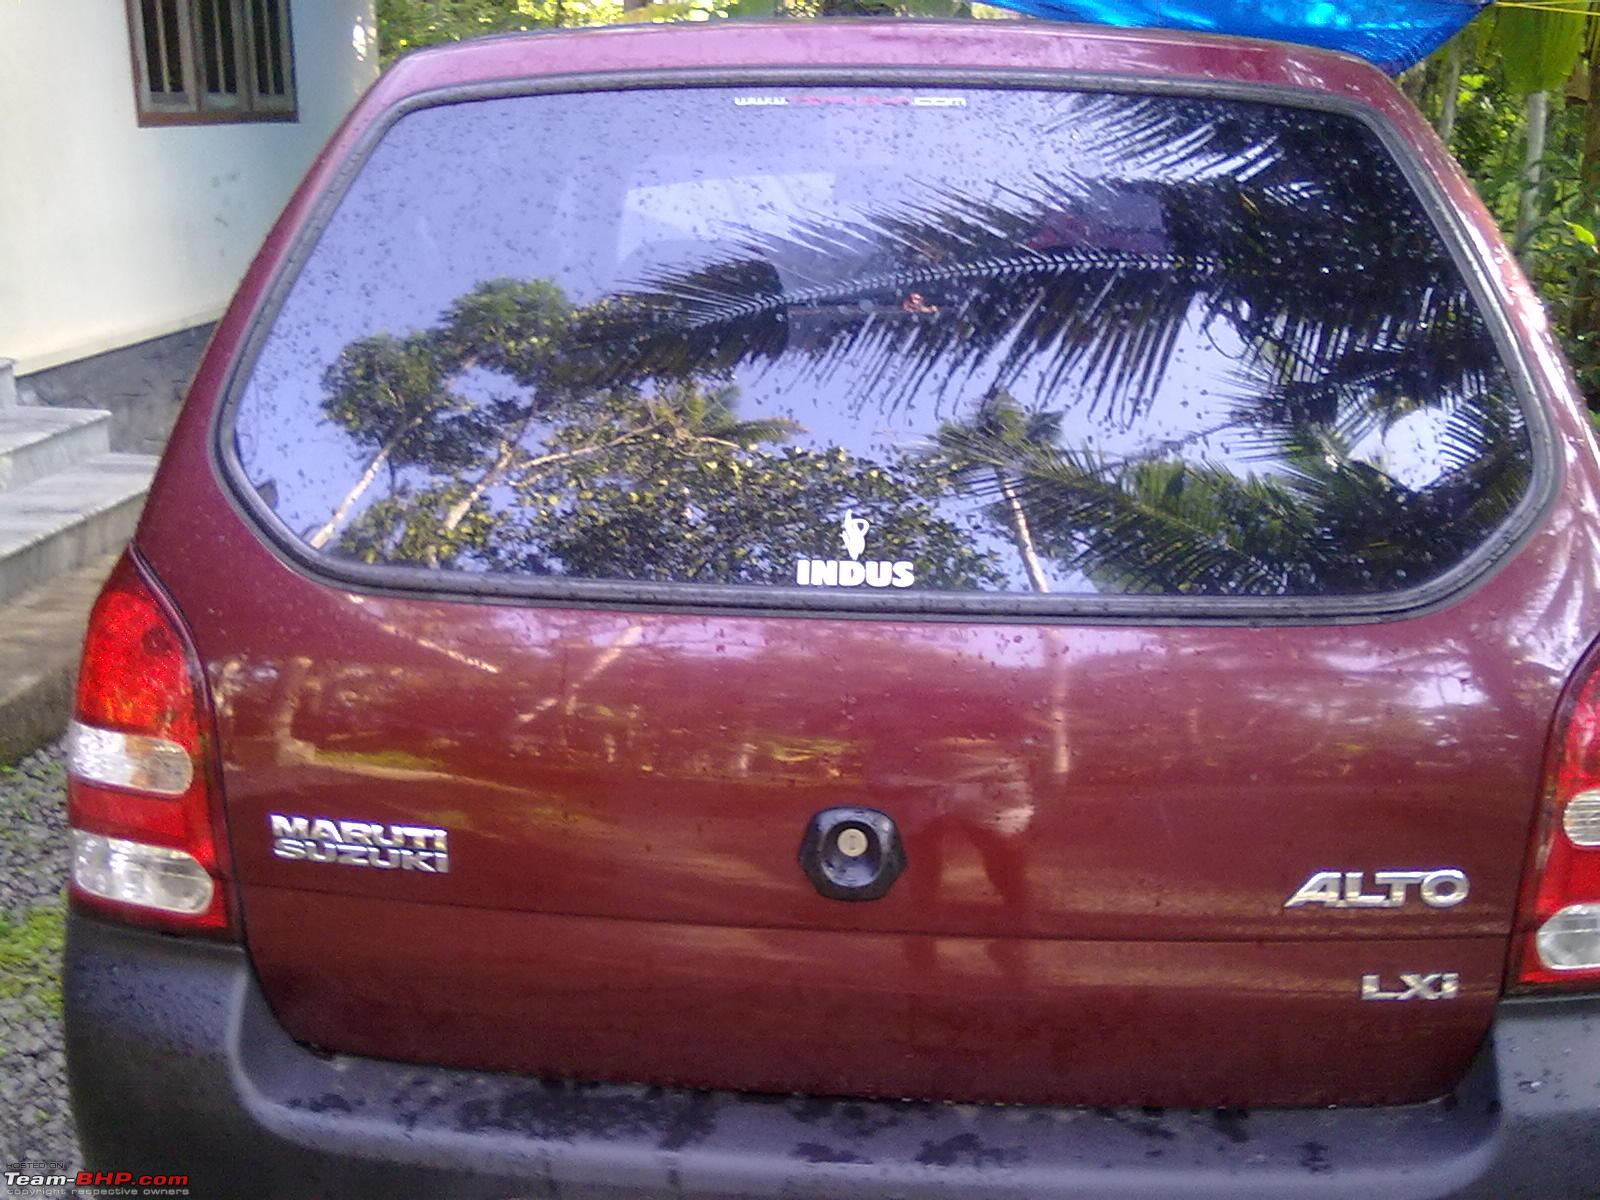 Car stickers design for alto - Going Cheap The Maruti Way Comparing The Maruti Alto Versions 060720121117 Jpg